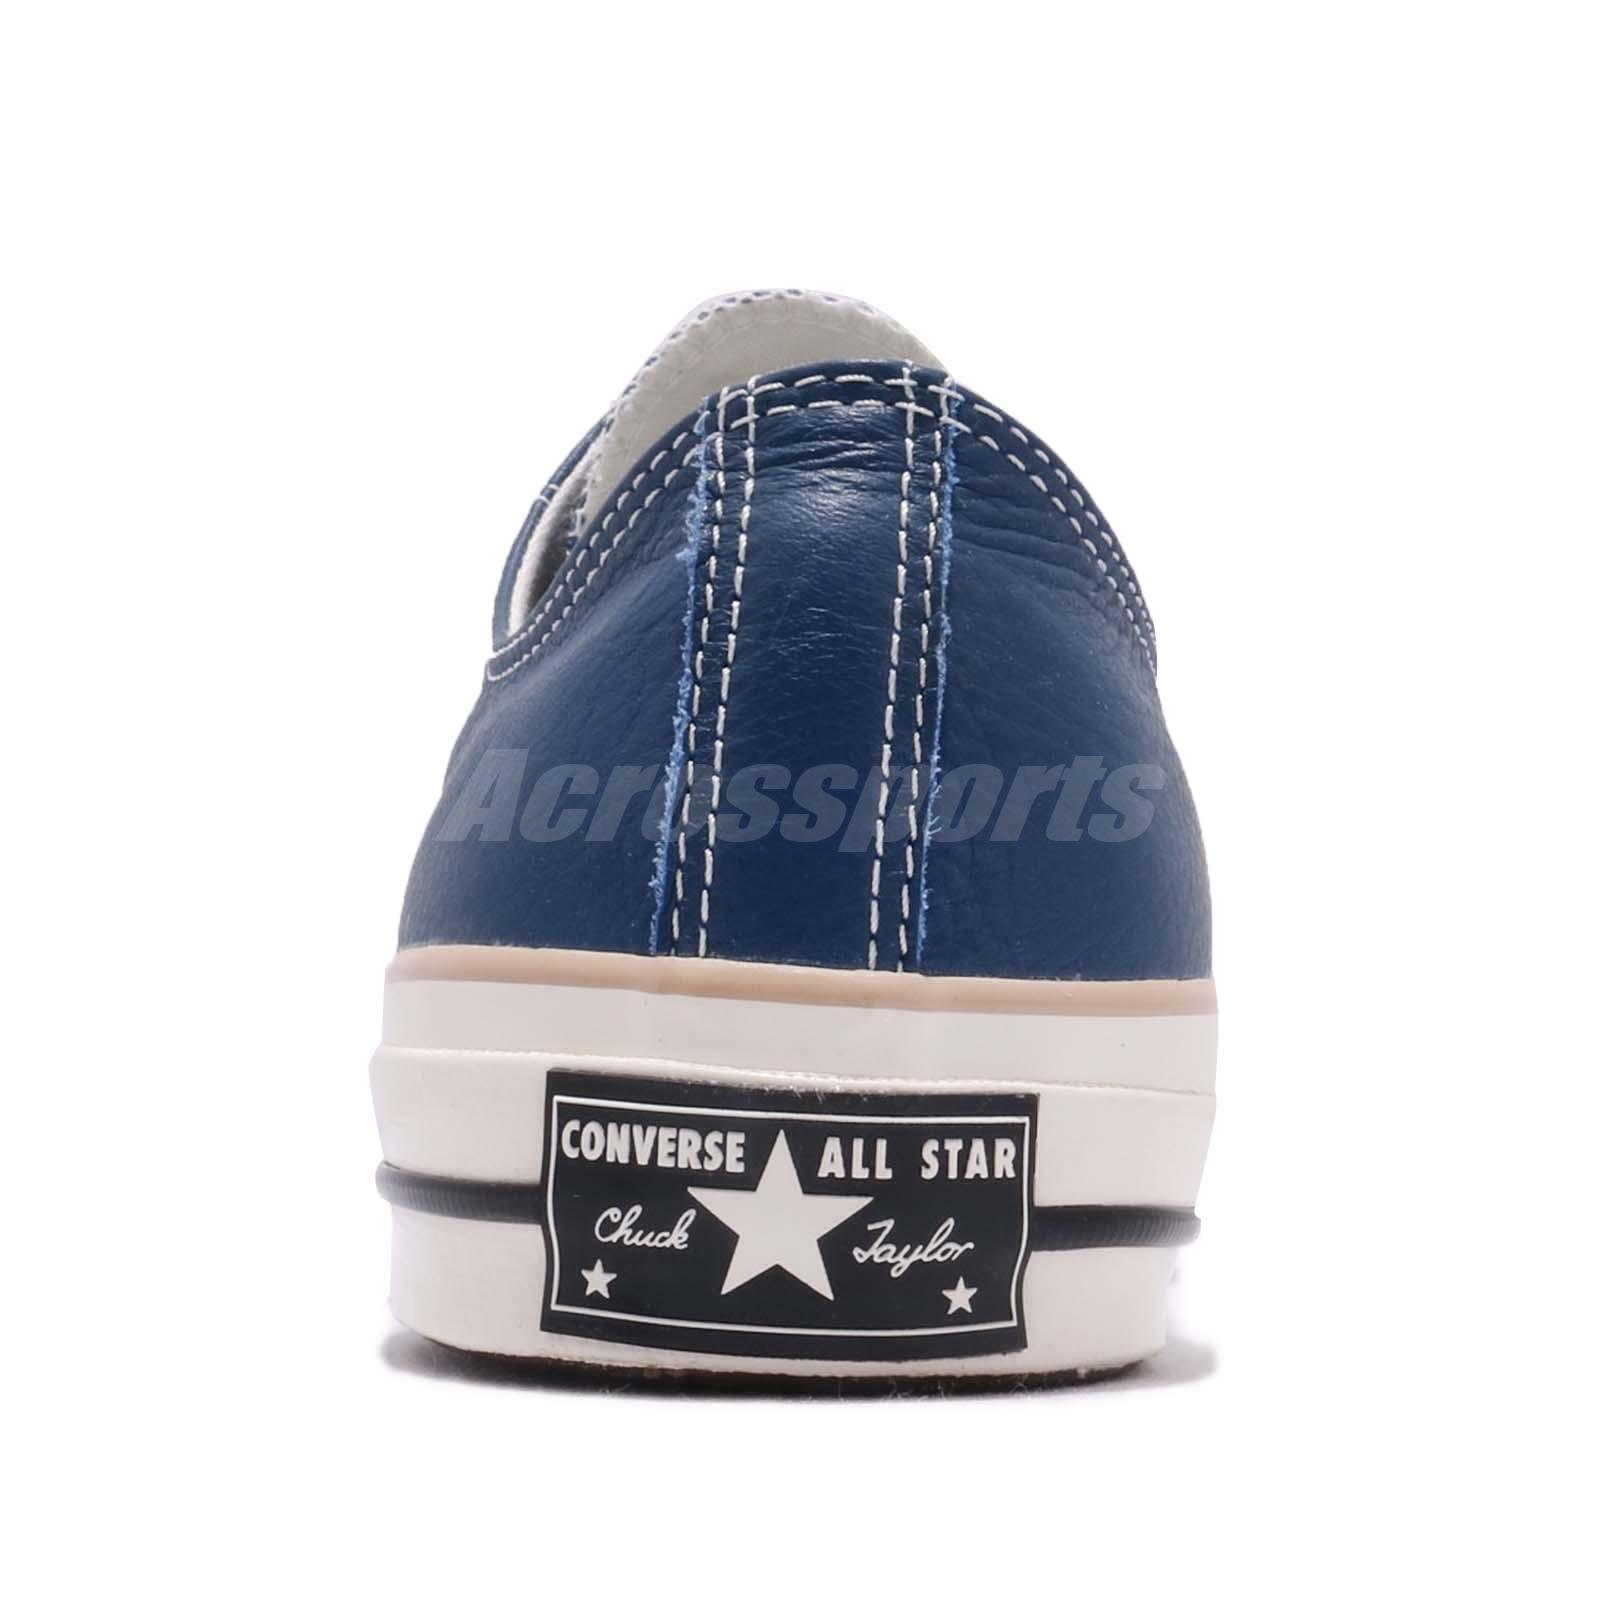 Clothing, Shoes & Accessories Converse First String Chuck Taylor All Star 70 1970s Ox Blue Men Women 162396c Men's Shoes